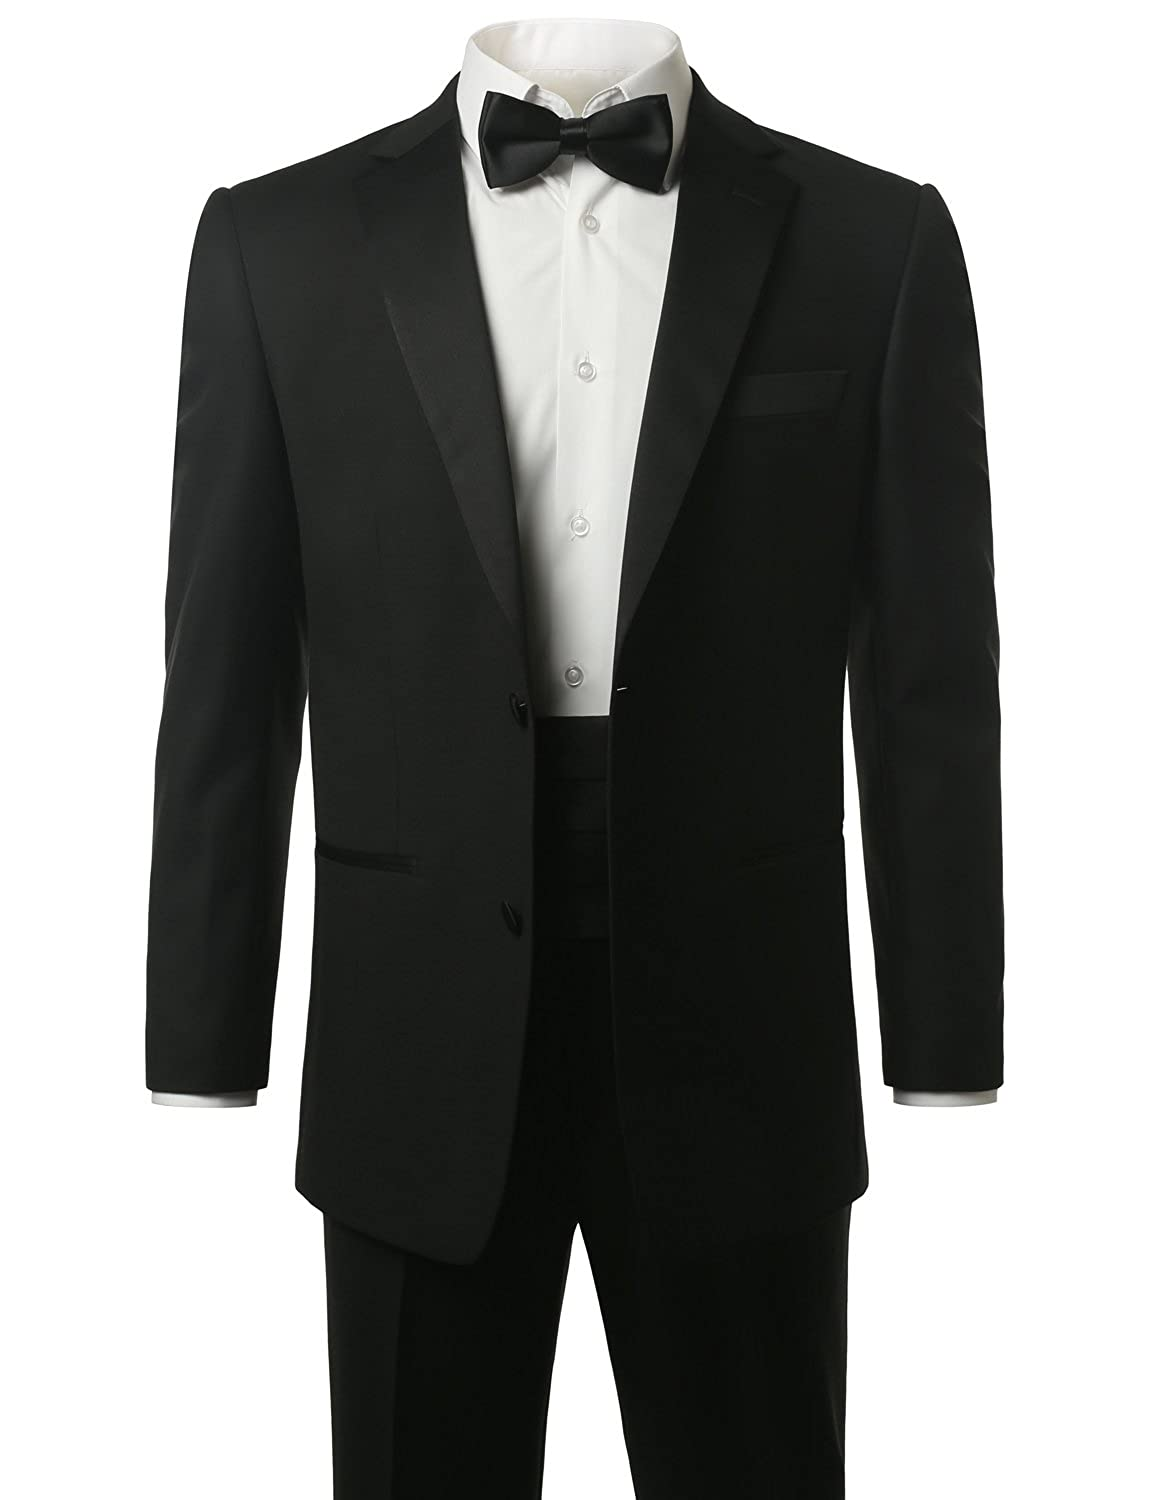 MONDAYSUIT Men's Modern Fit 2-Piece Suit Blazer Tuxedo & Trousers (BLACK/WHITE)